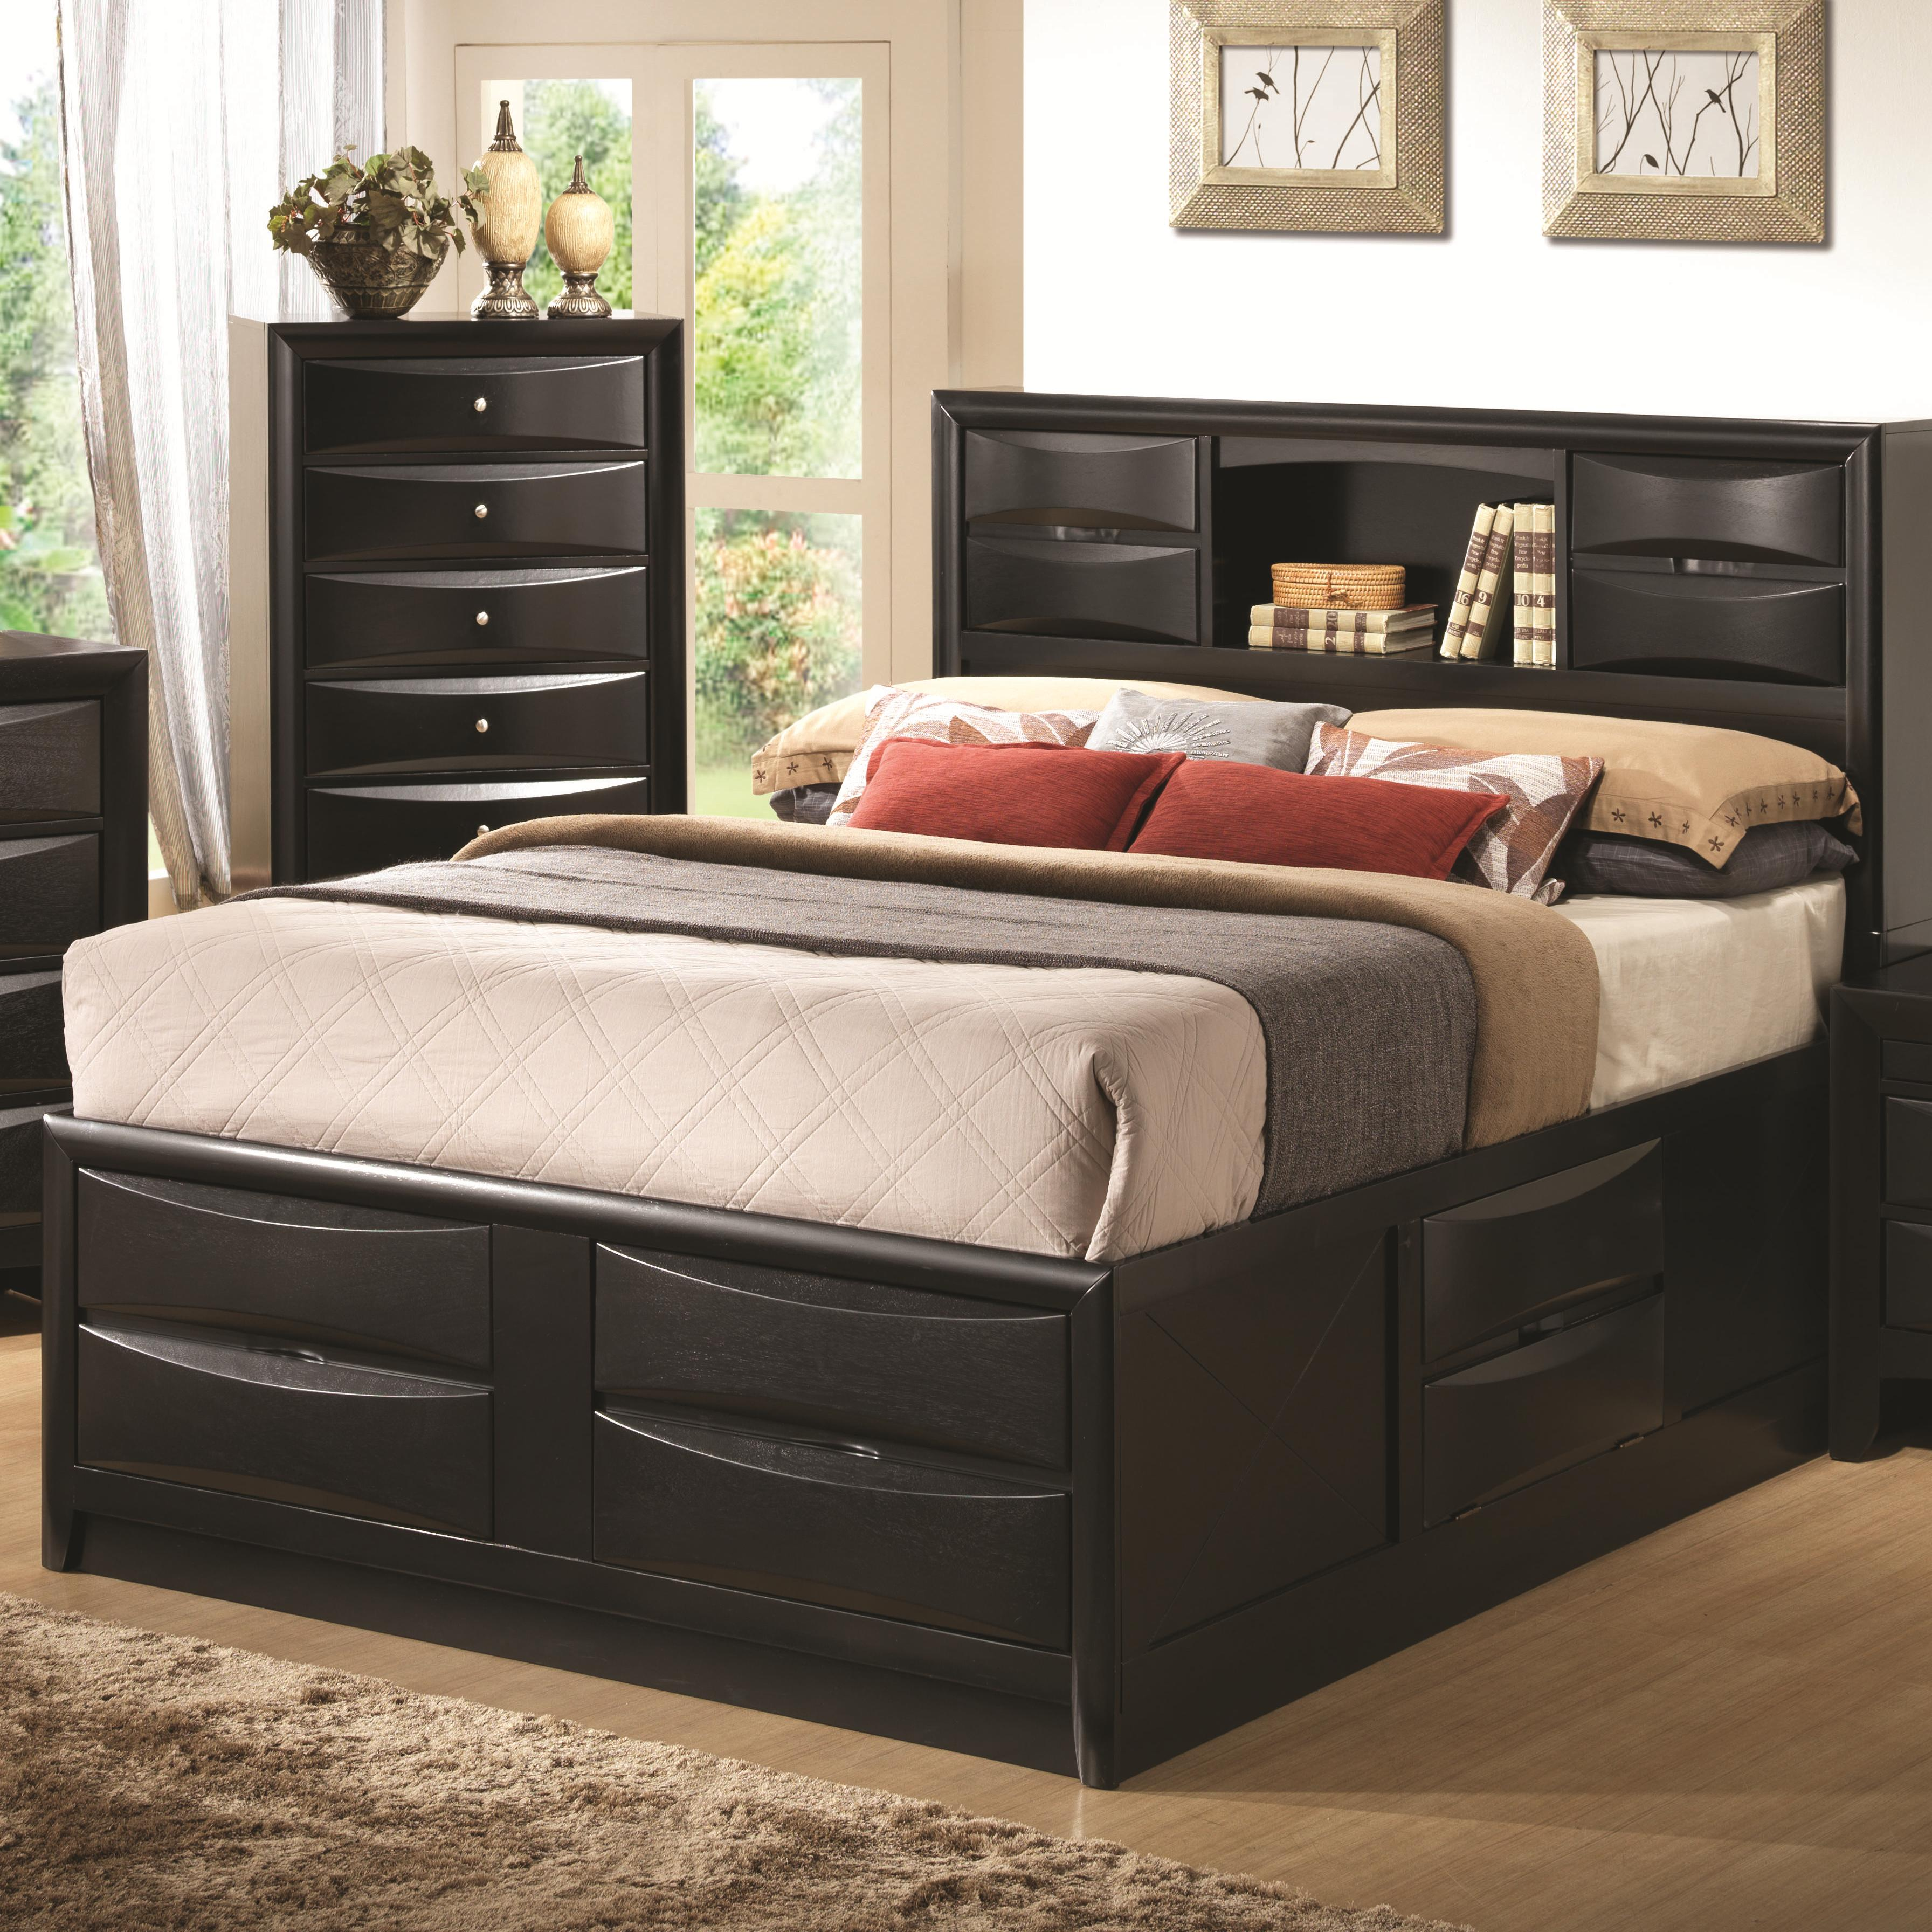 Cal king 4pc set, briana (bed, dresser, nightstand, mirror)